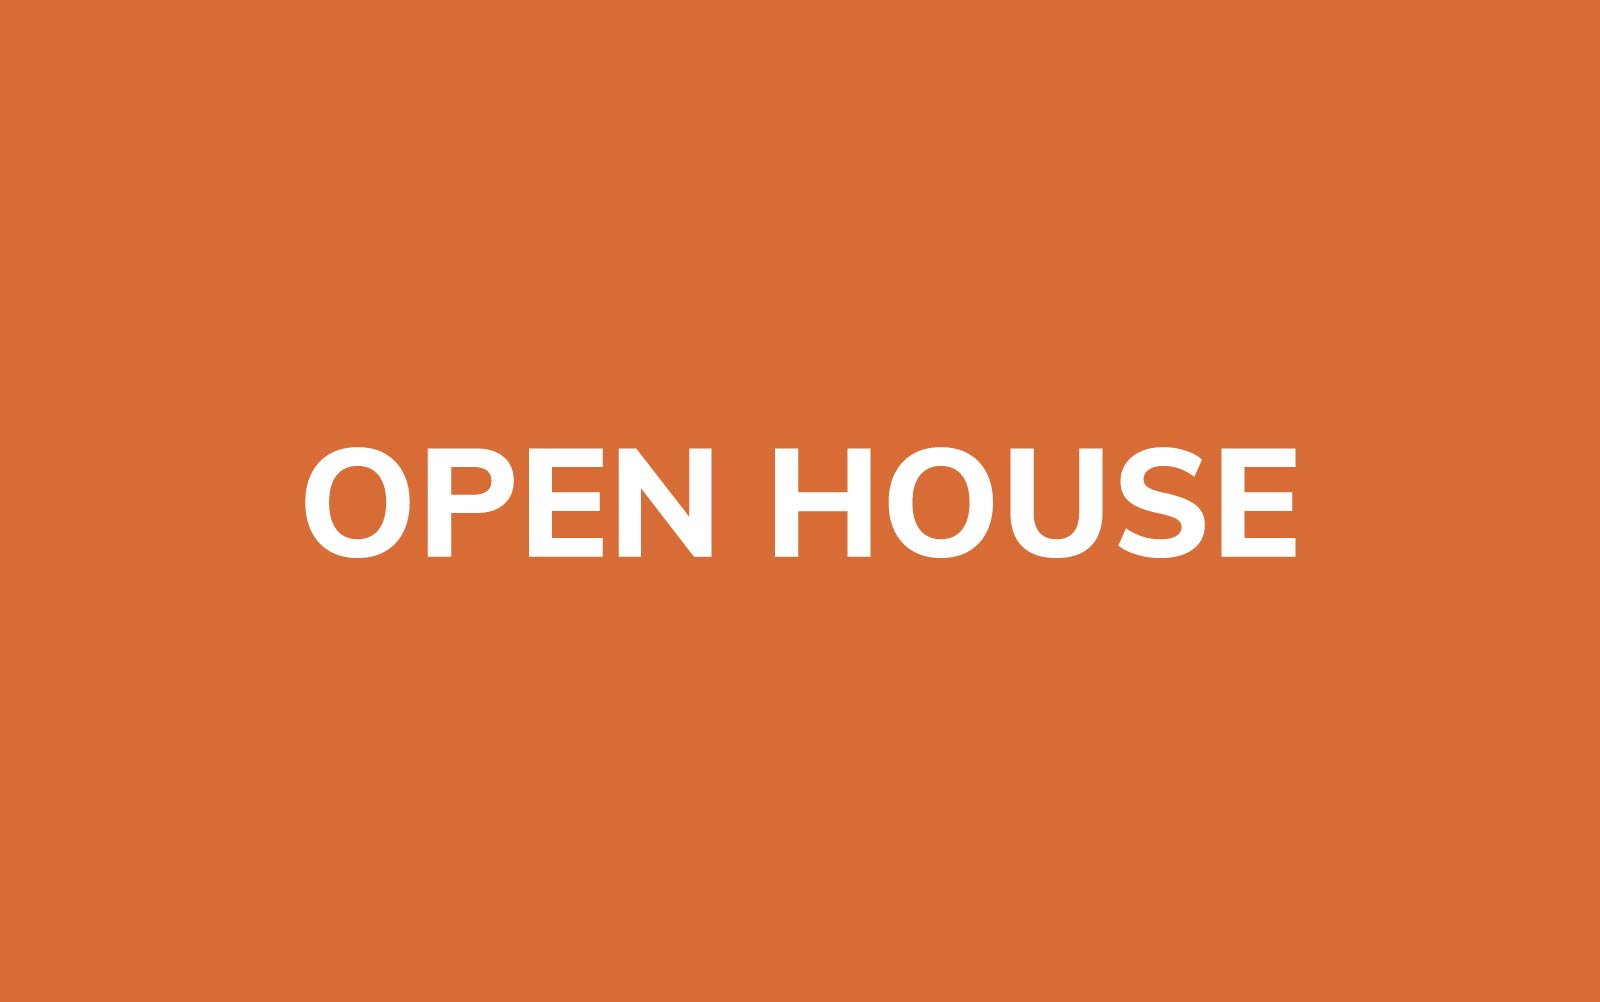 ITP Open House - Wednesday, April 17, 2019; 7:00 - 9:00 PM